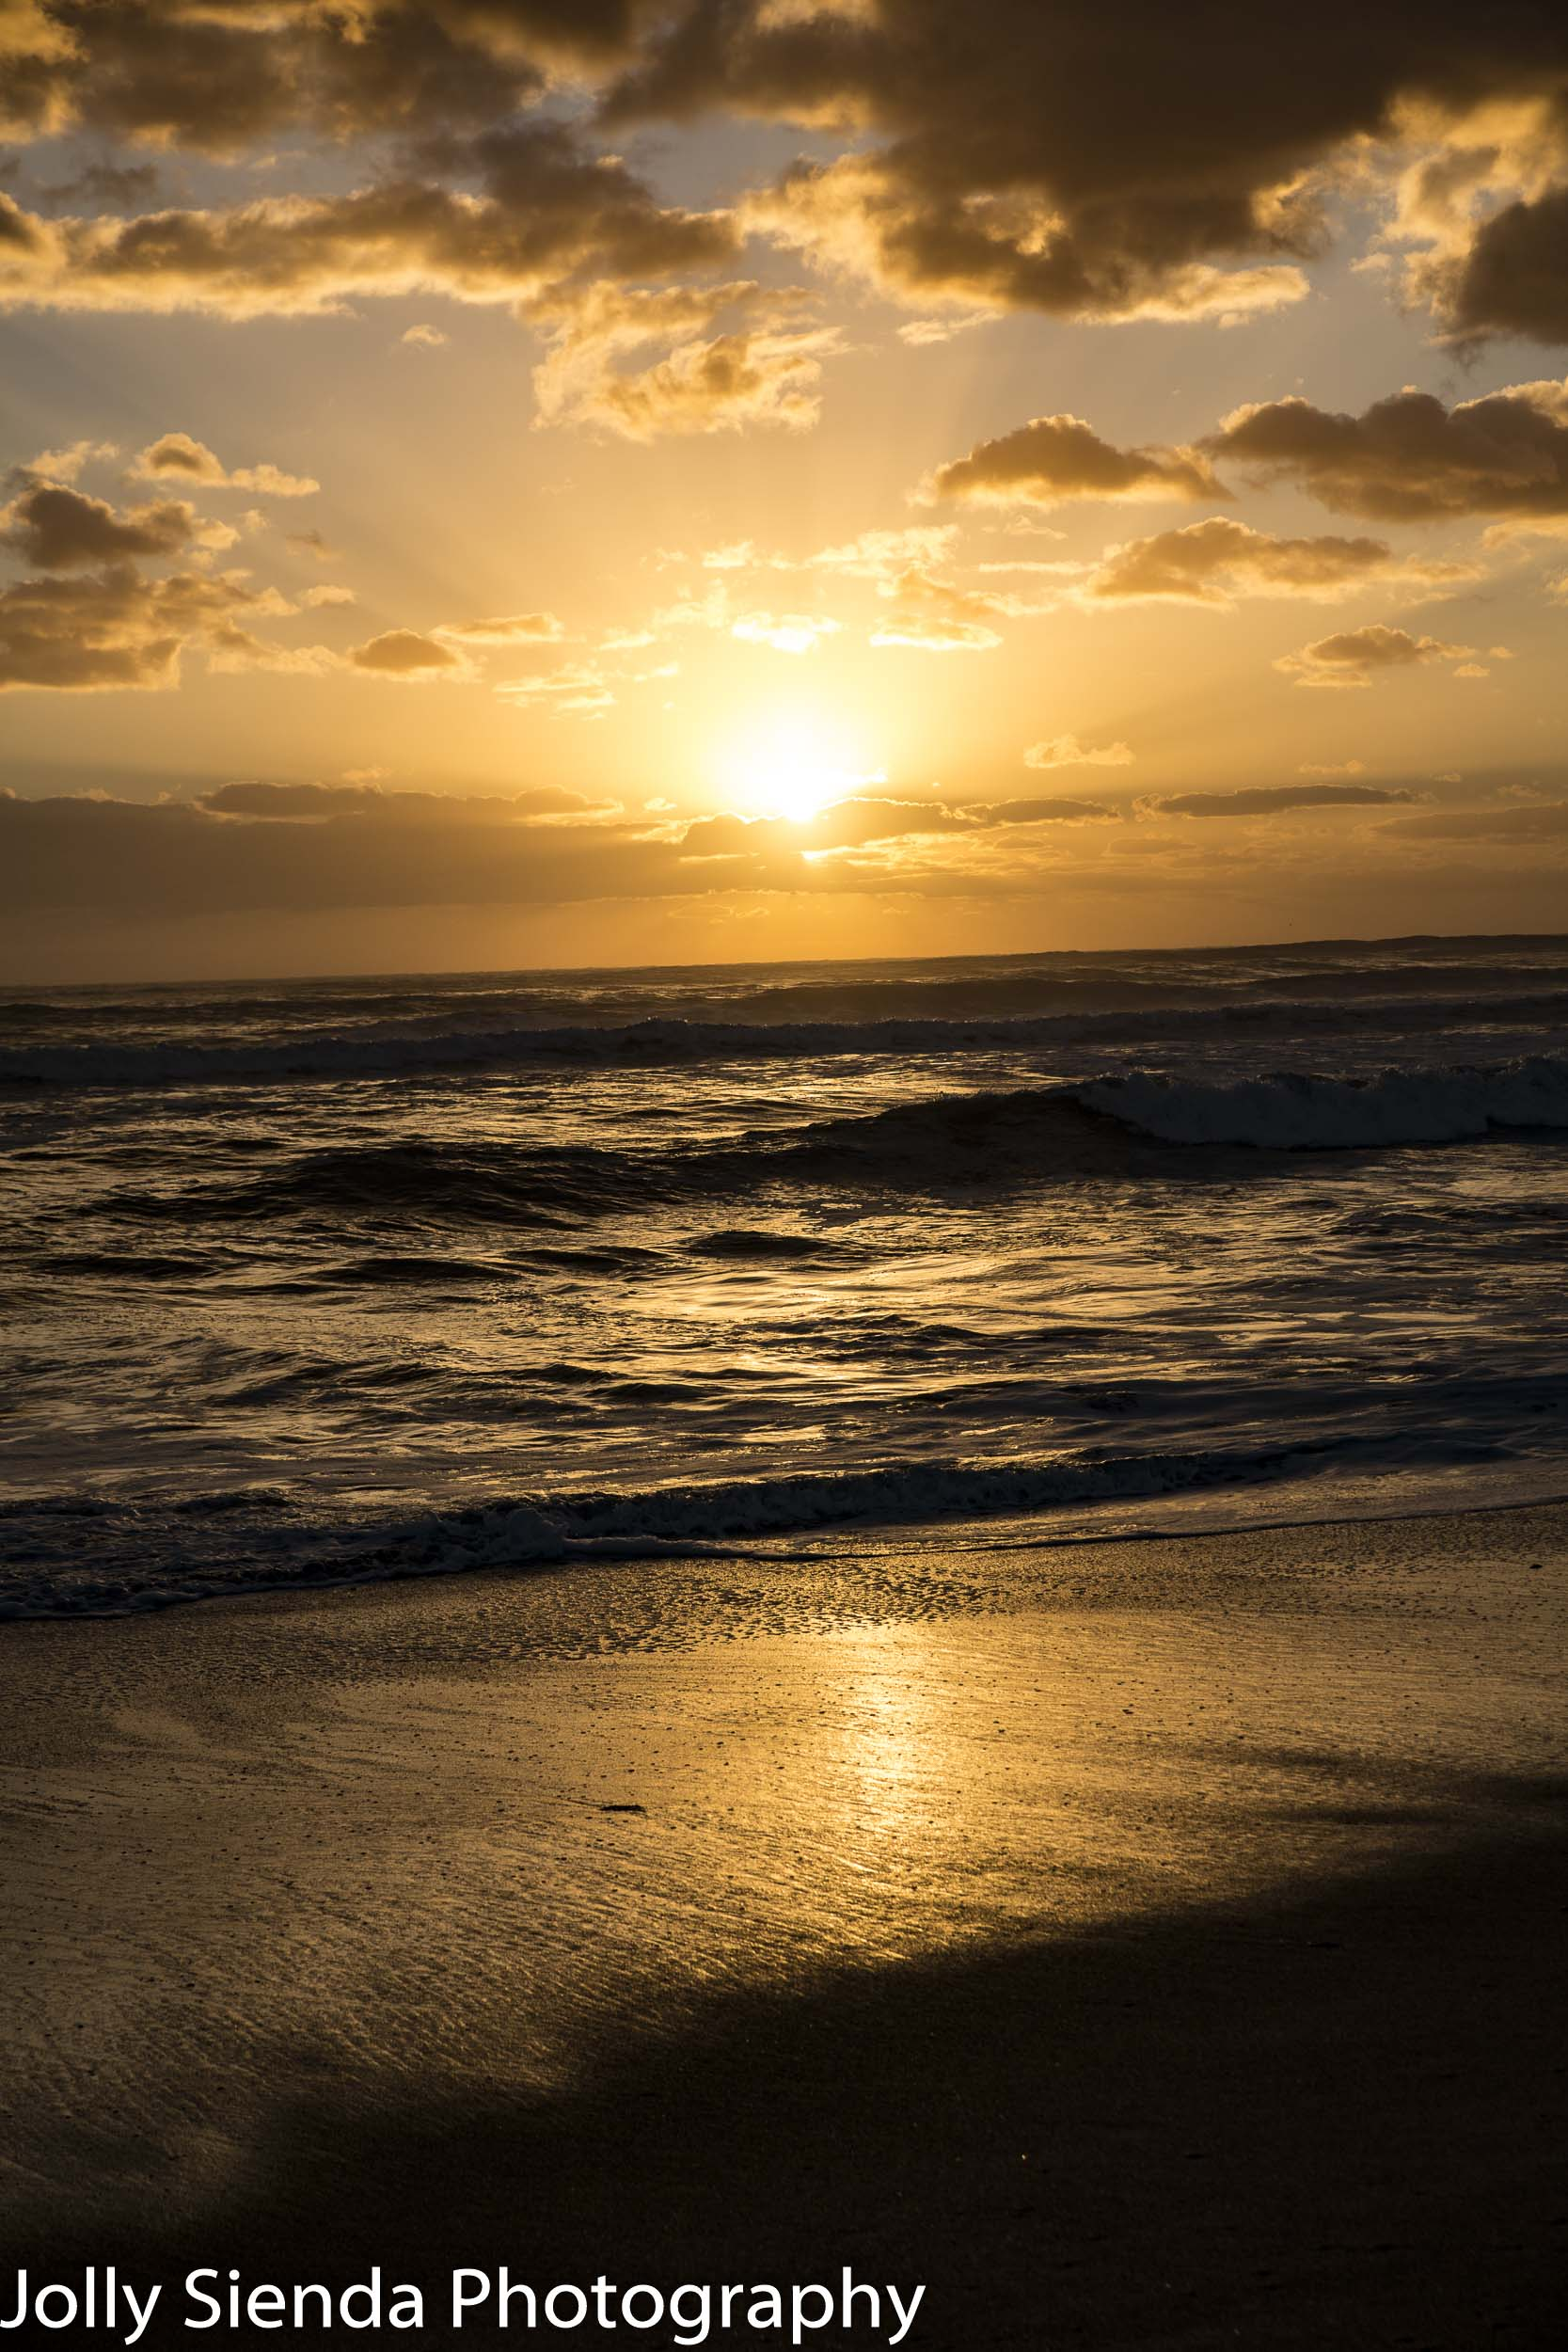 Sunrise amd waves over a wet sandy beach